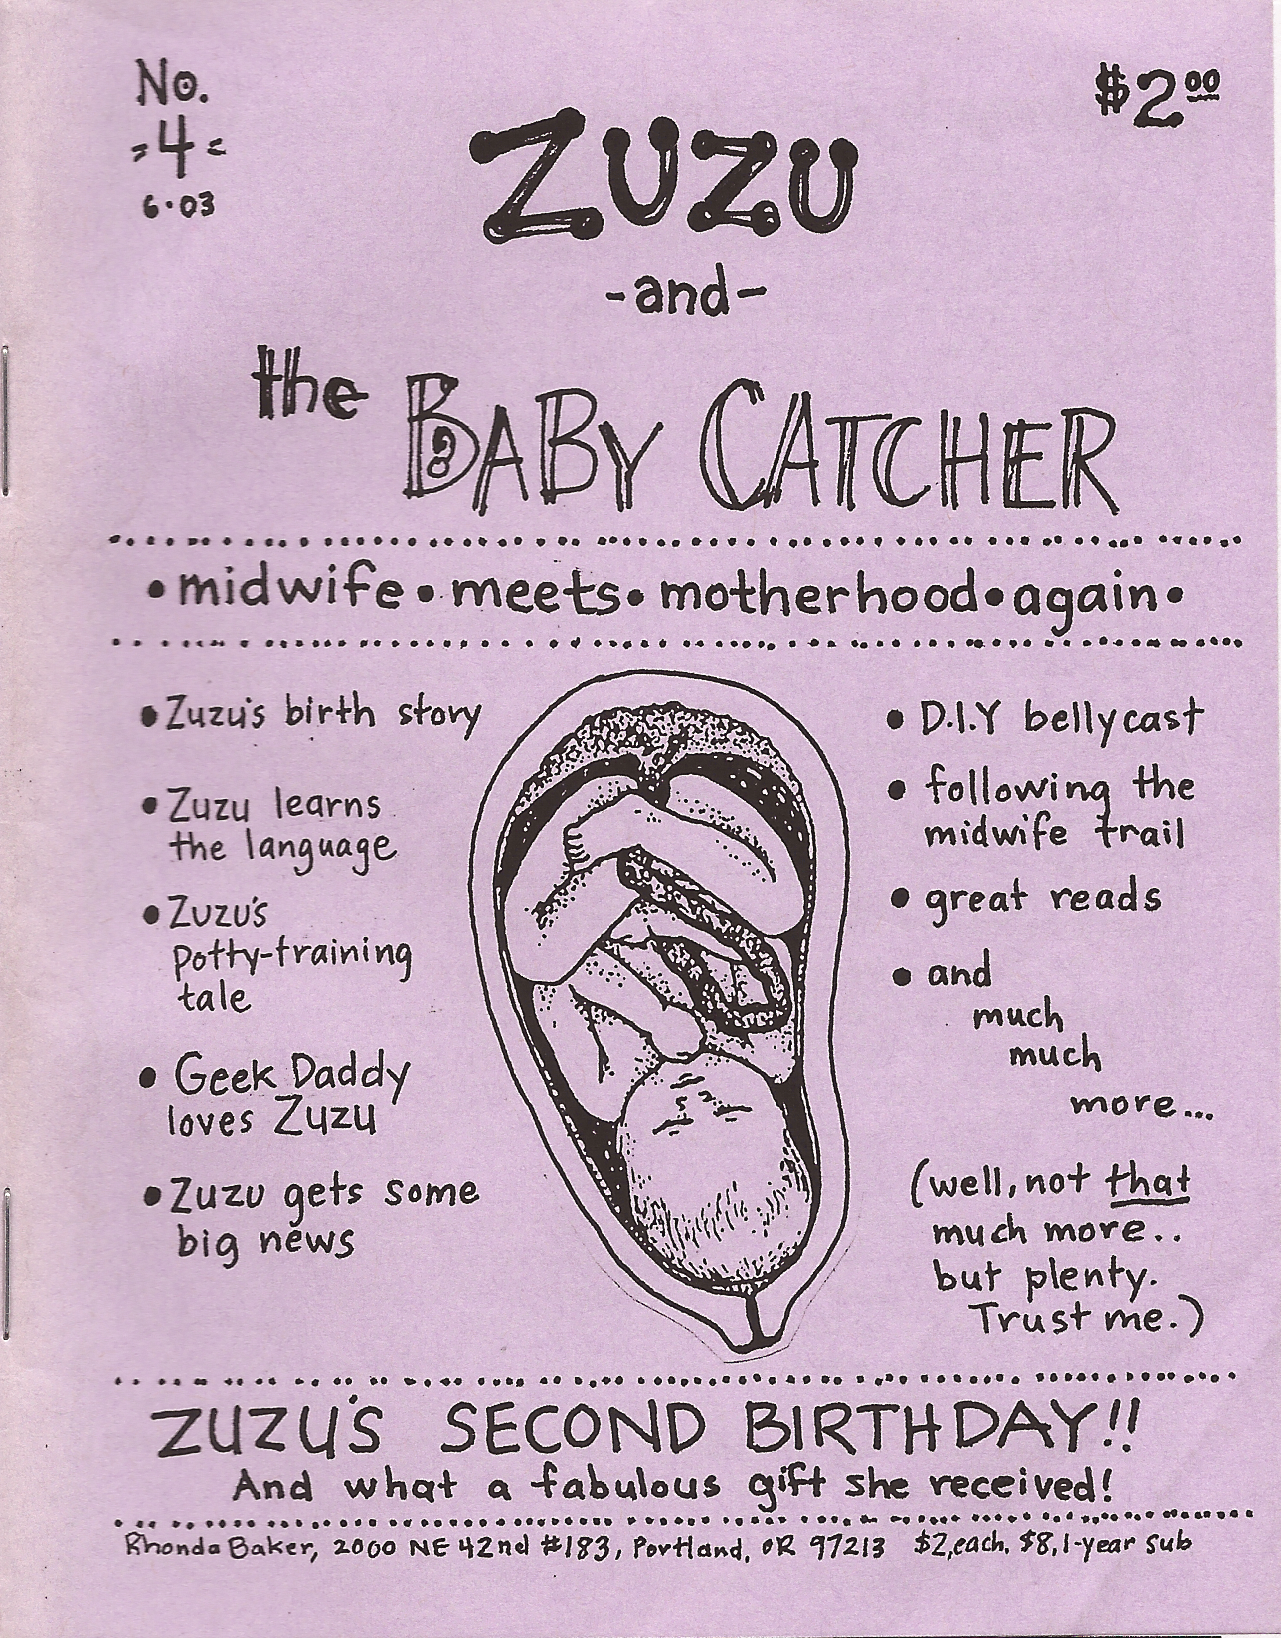 Zuzu and the Baby Catcher Issue 4